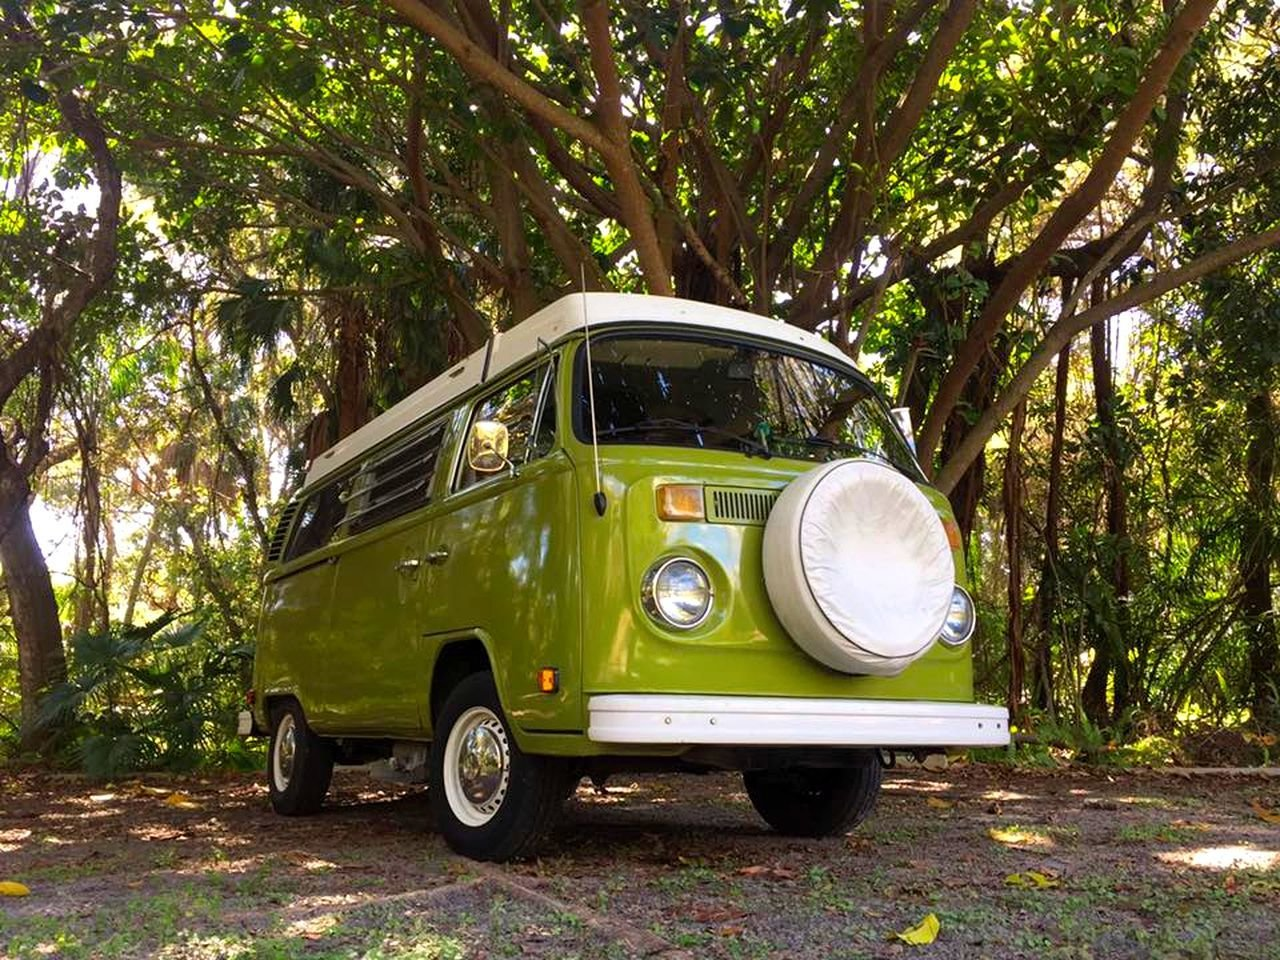 With plaid and wood interiors and funky exterior colors, this fleet of '70s era VW caravans is the way to see Florida.  Photo 8 of 18 in 17 Kick-Ass Campers and Trailers You Can Rent From $45 a Night